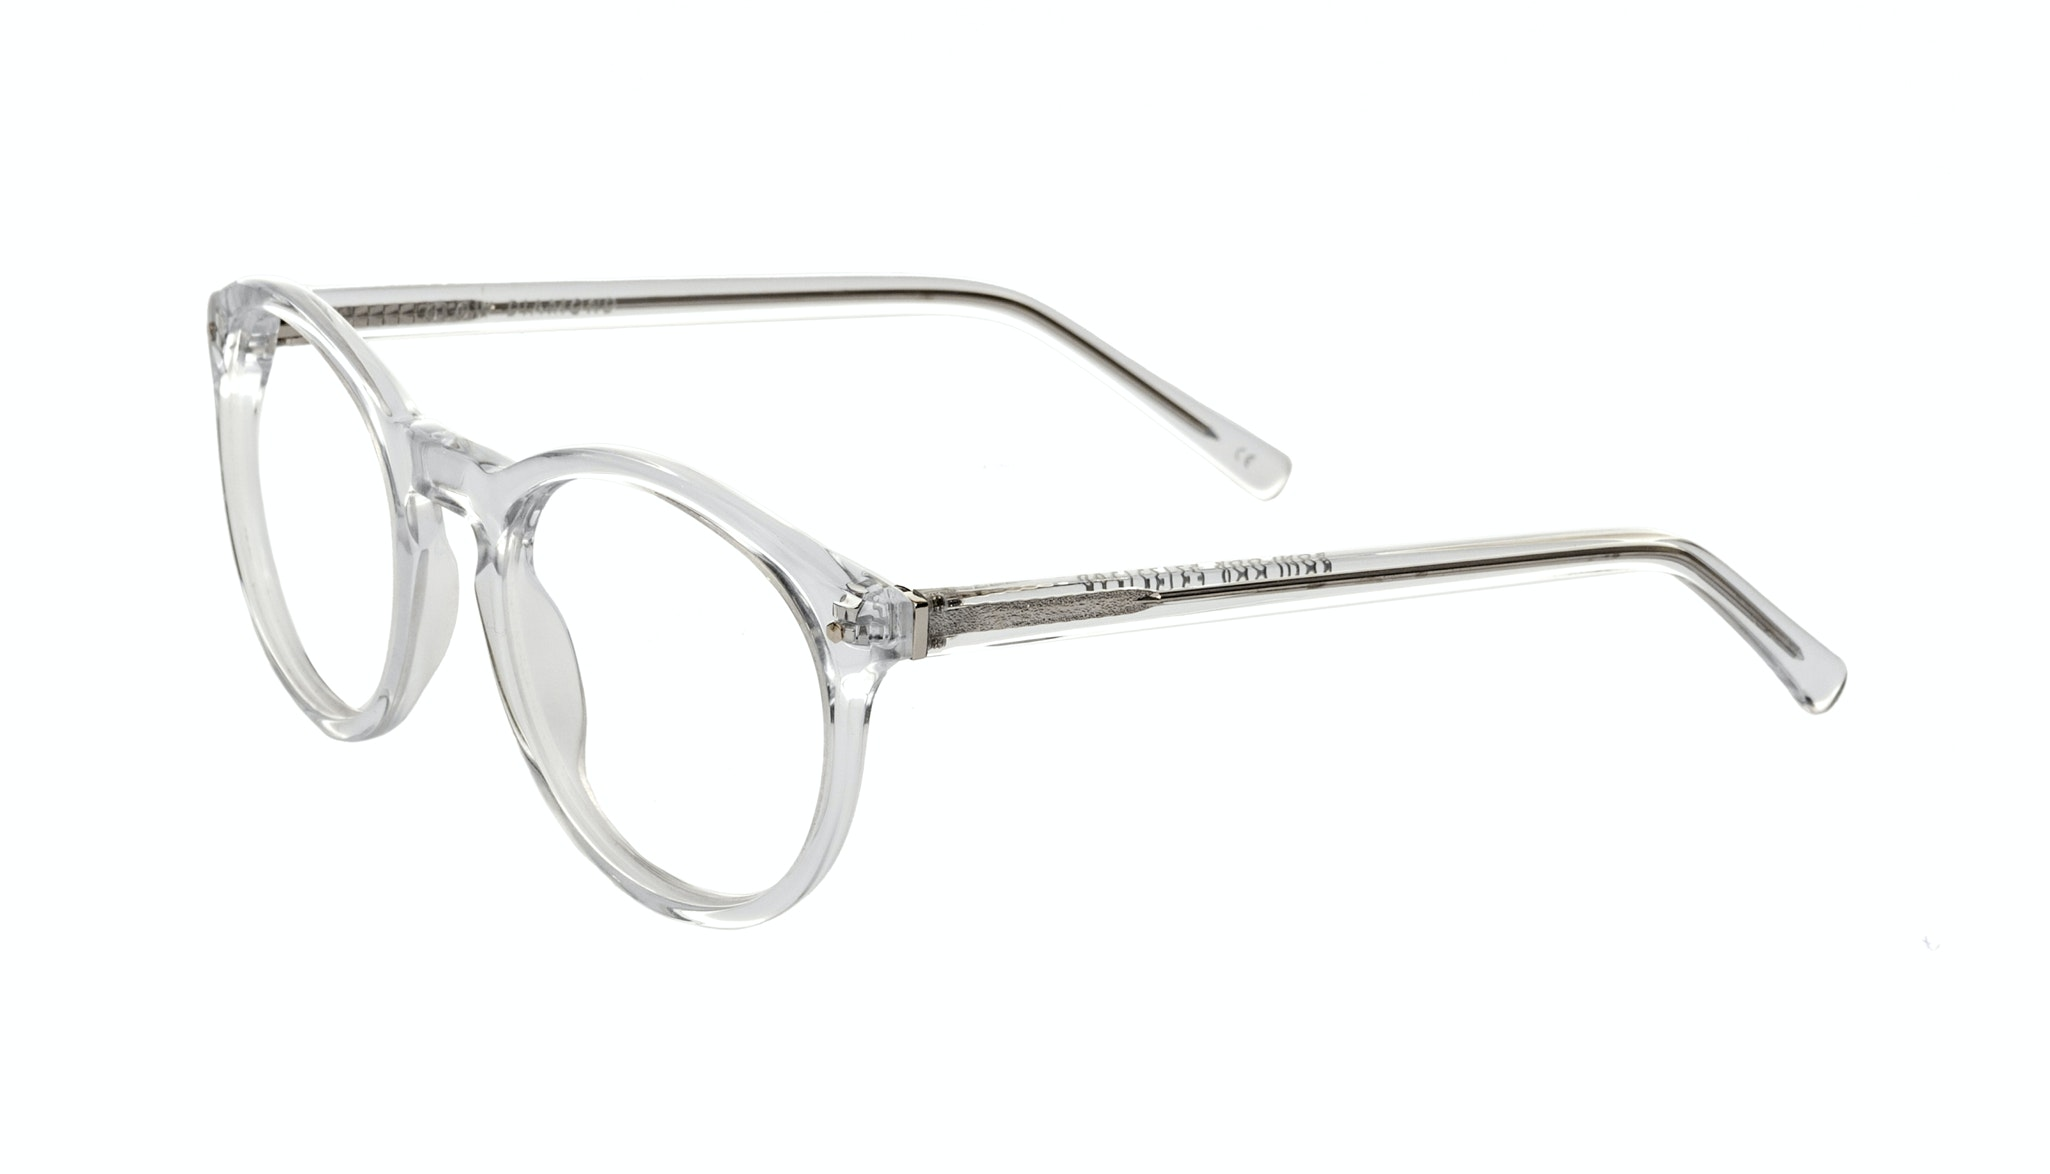 Affordable Fashion Glasses Round Eyeglasses Women Glow Diamond Tilt